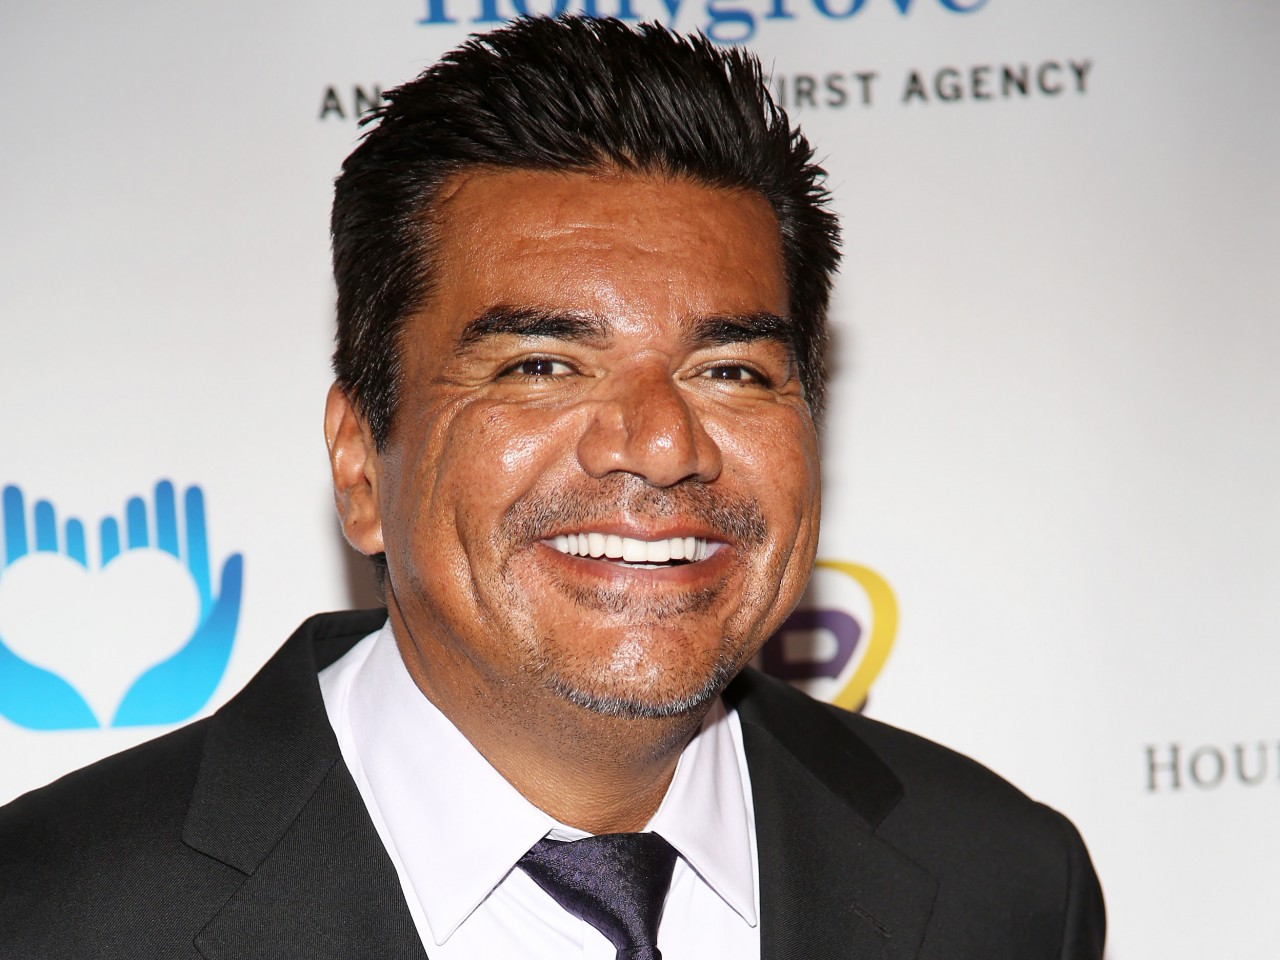 george lopez theme song download